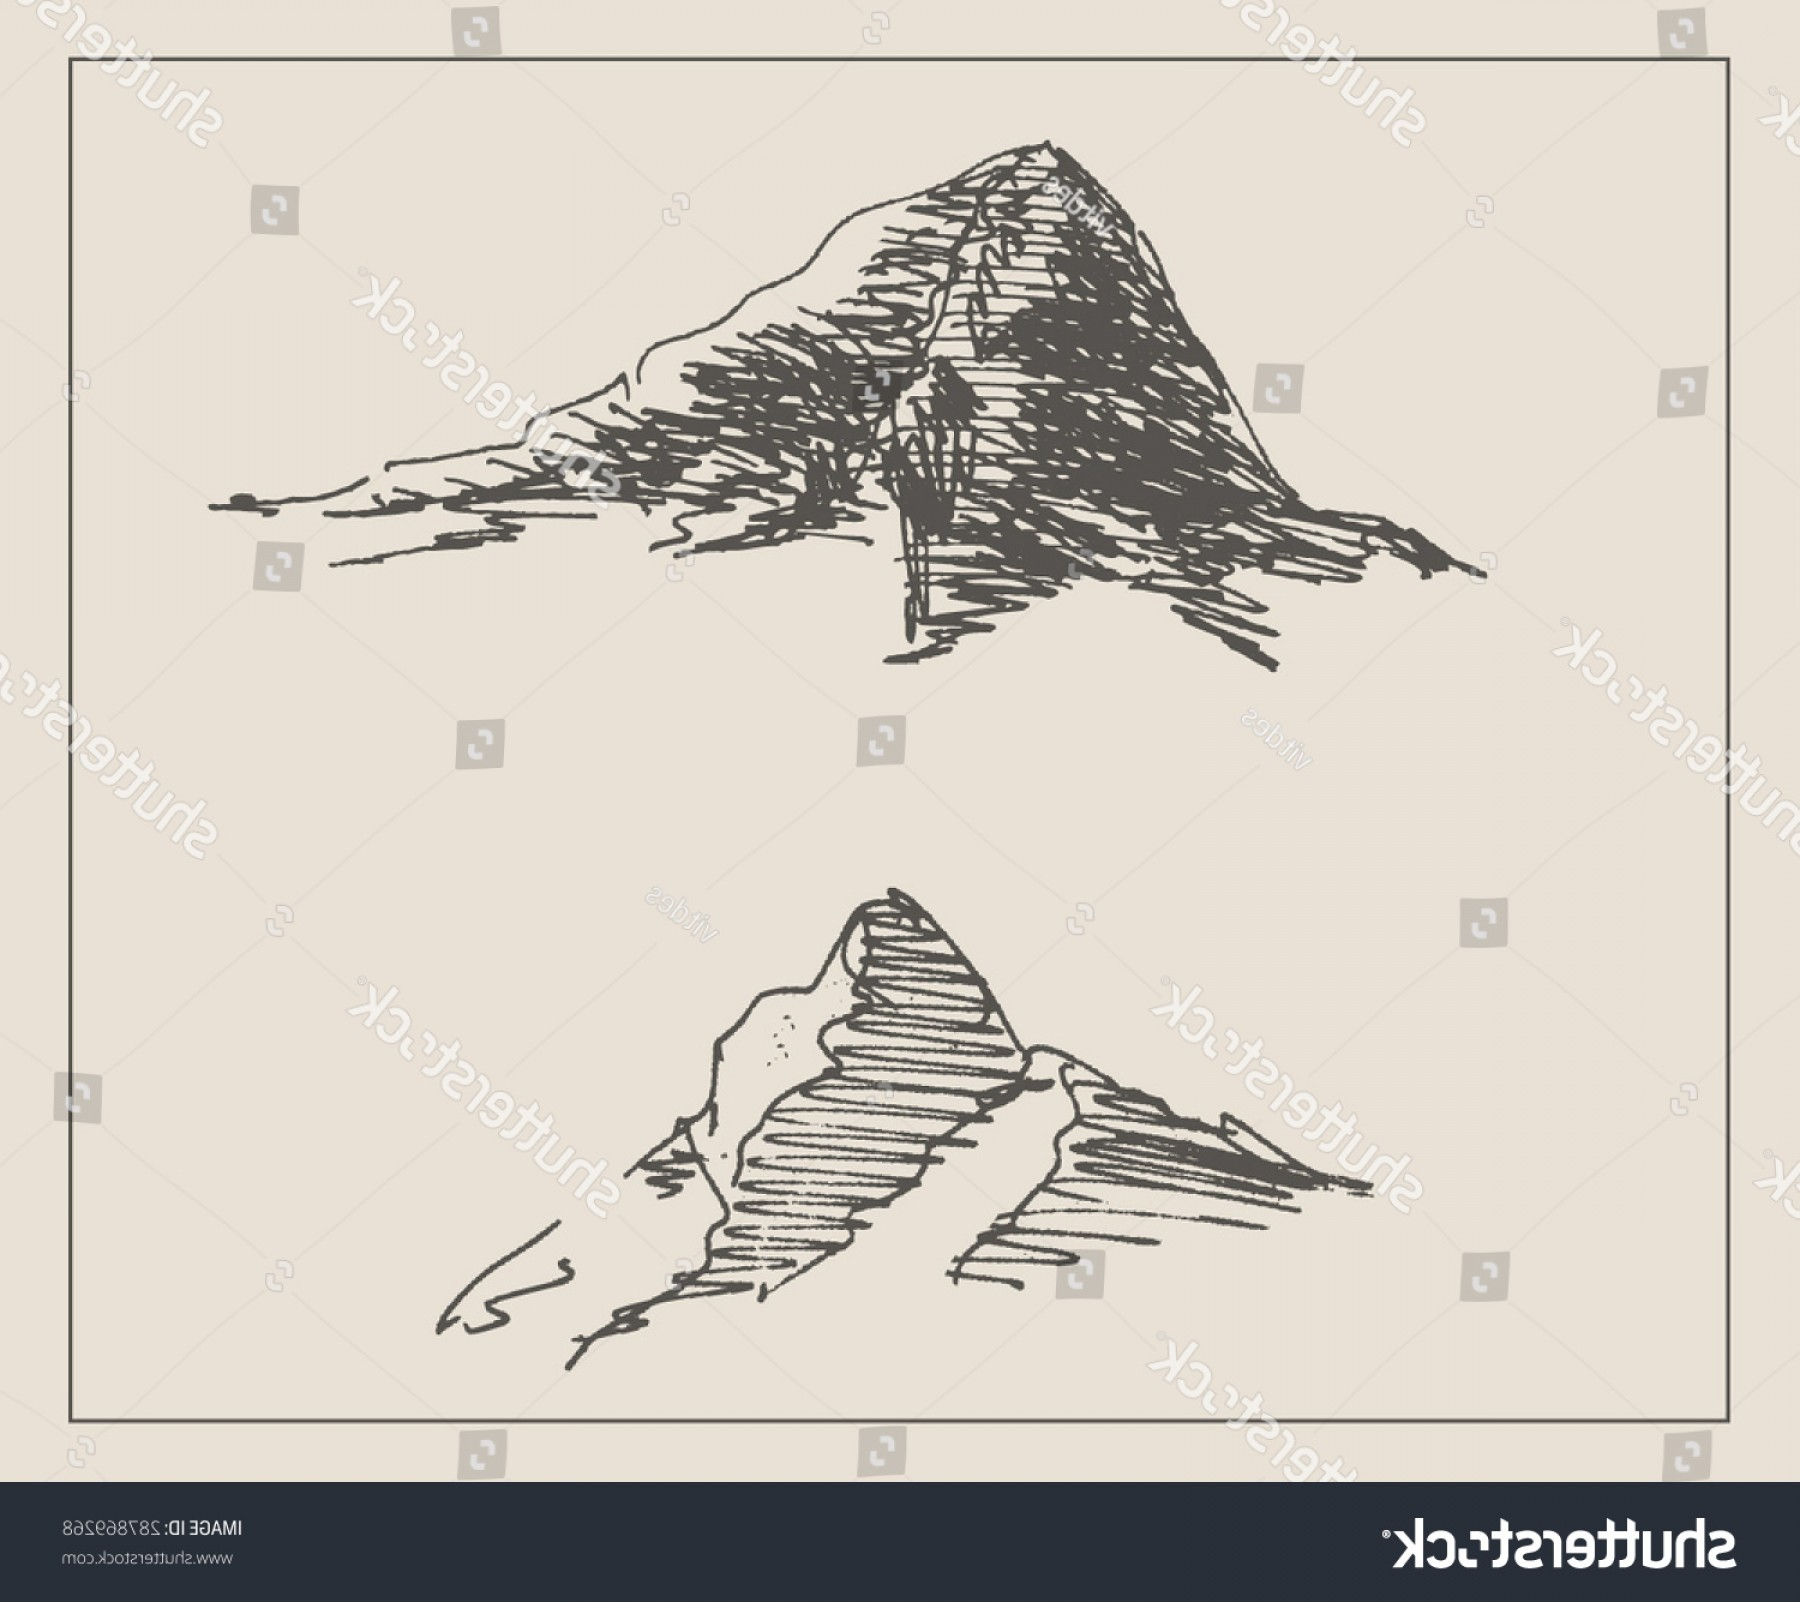 Rocky Mountain Line Art Vector: Snowy Rocky Mountain Scenery Sketch Hand